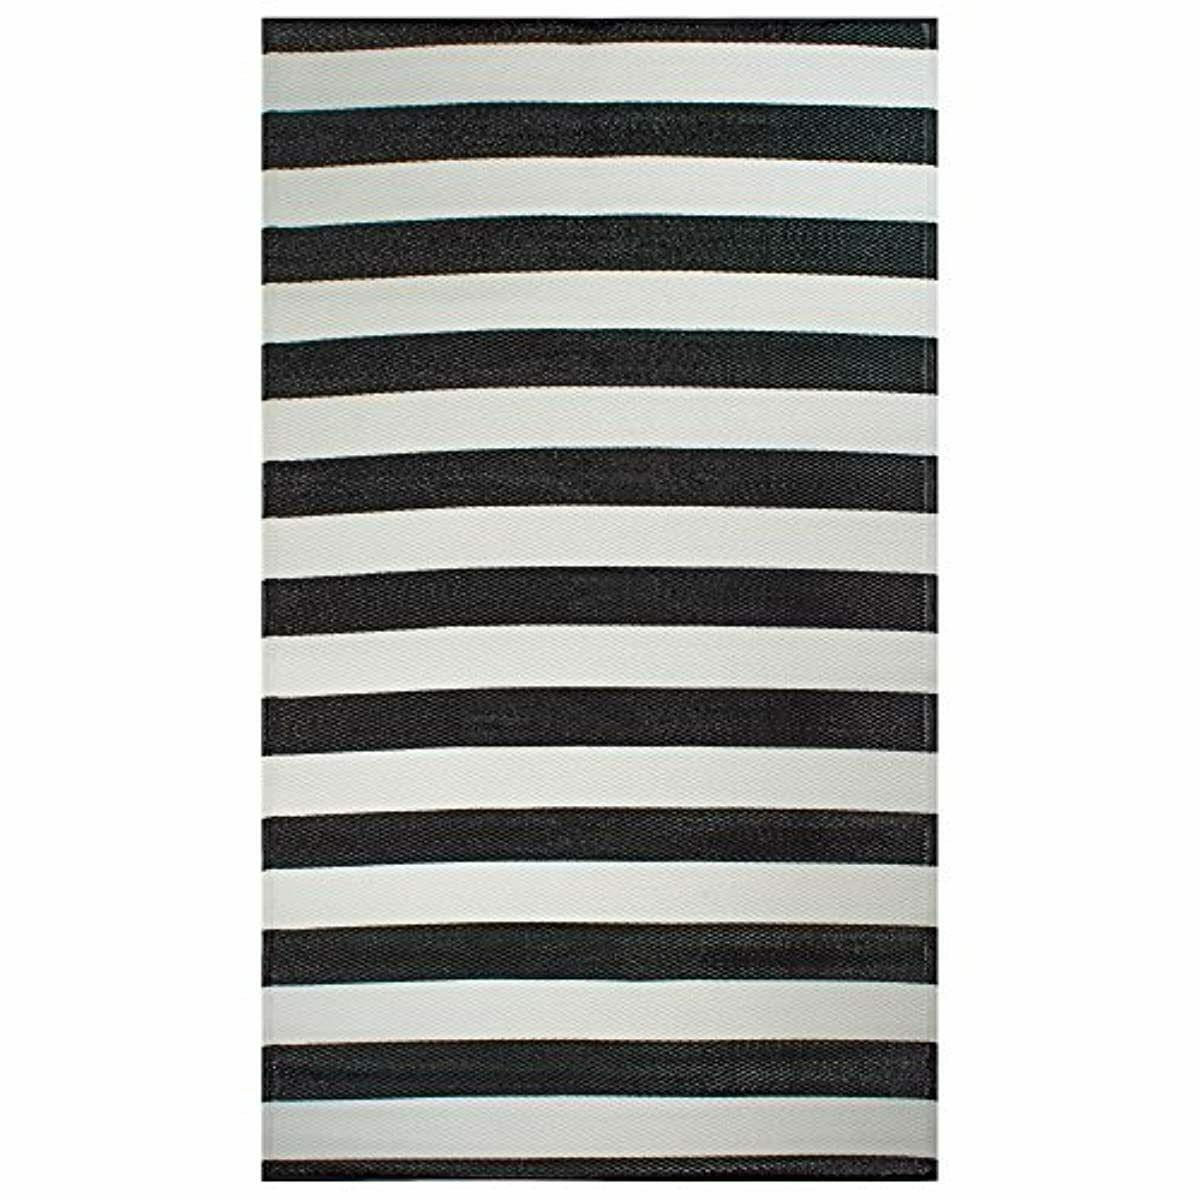 DII Striped Outdoor Rug, 4x6', White &